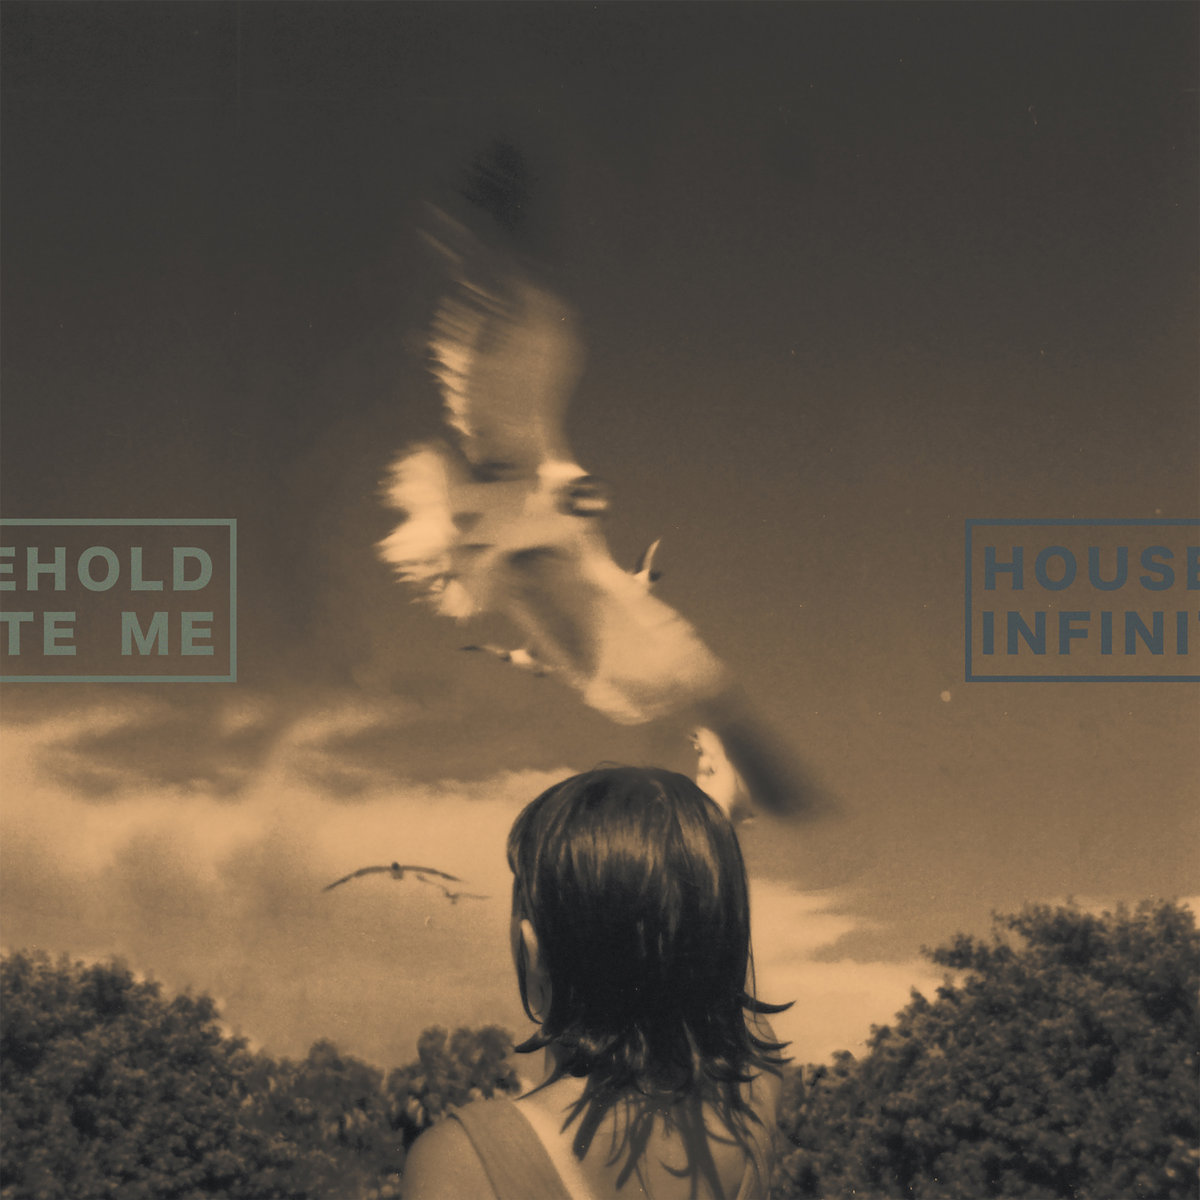 Household / Infinite Me